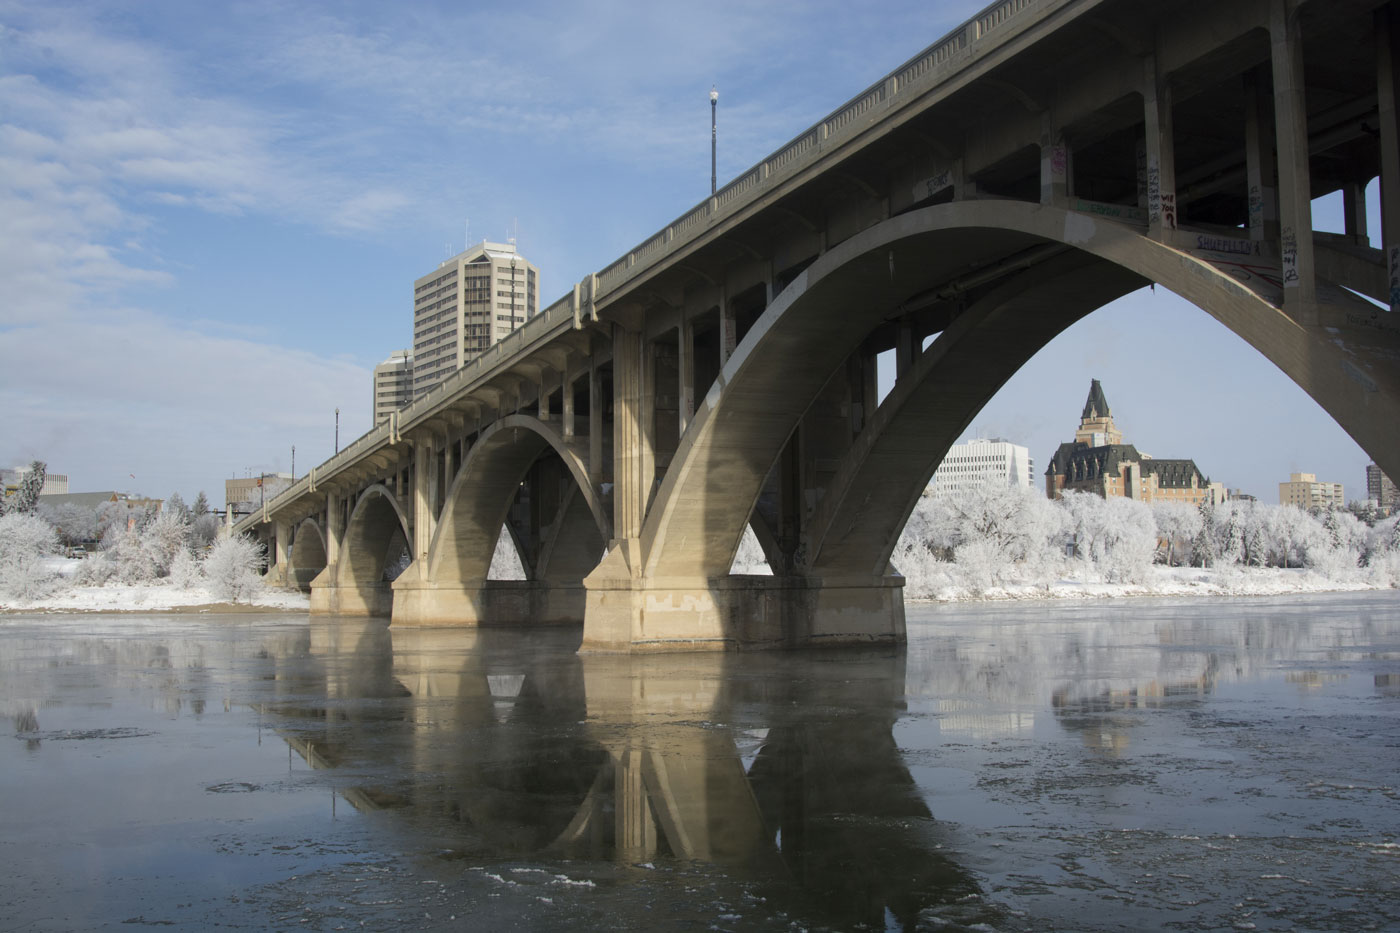 Broadway Bridge in Saskatoon during the winter with the Bessborough framed underneath one of the spans.